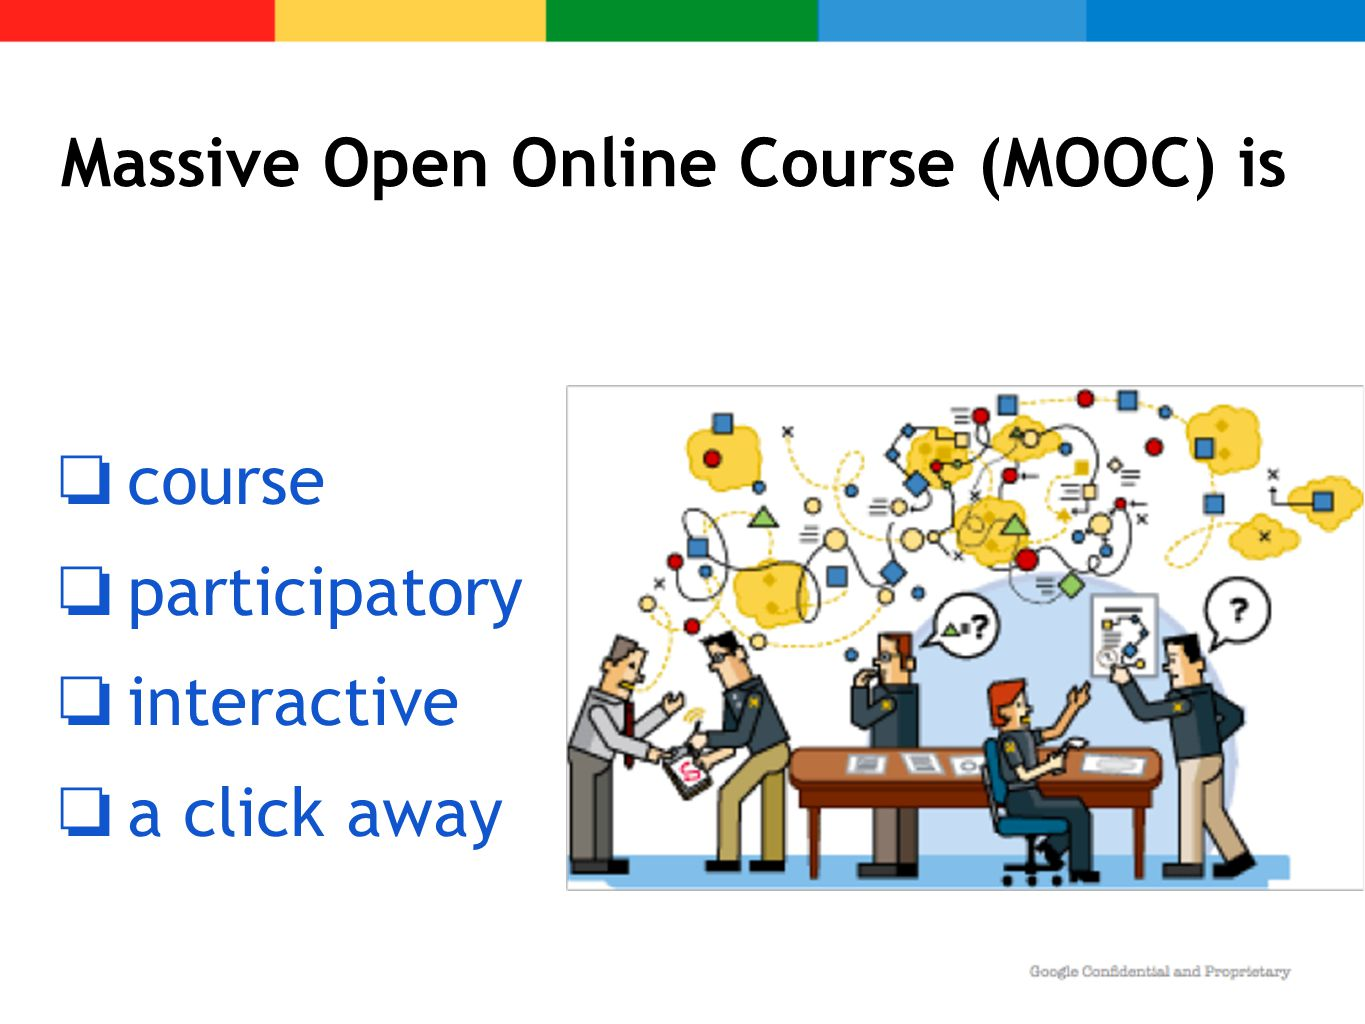 Massive Open Online Course (MOOC) is ❏ course ❏ participatory ❏ interactive ❏ a click away